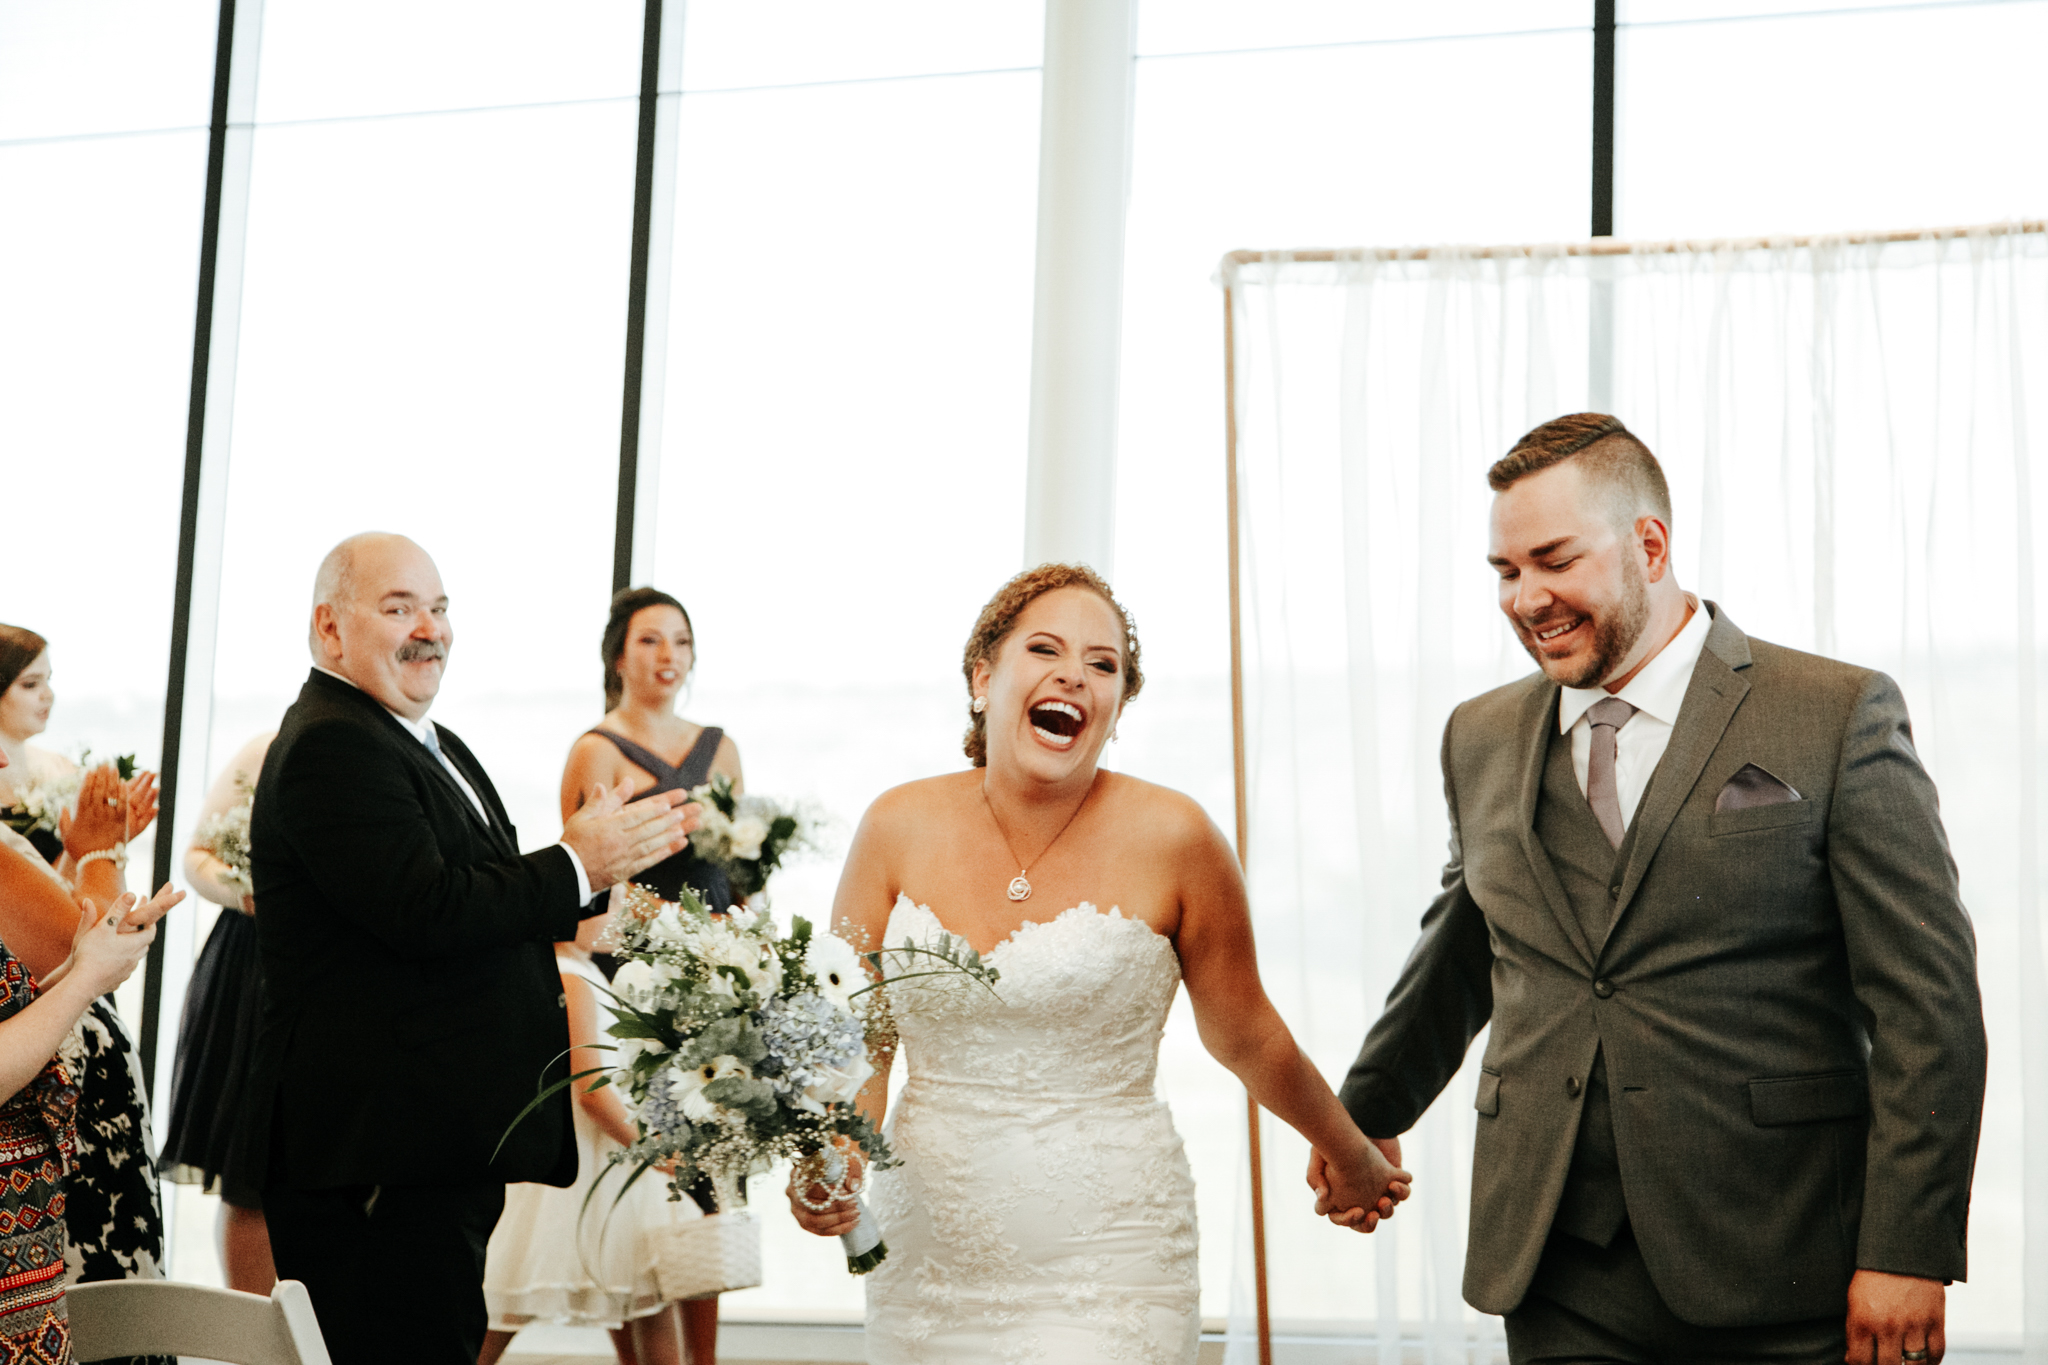 lethbridge-wedding-photographer-love-and-be-loved-photography-trent-danielle-galt-reception-picture-image-photo-59.jpg